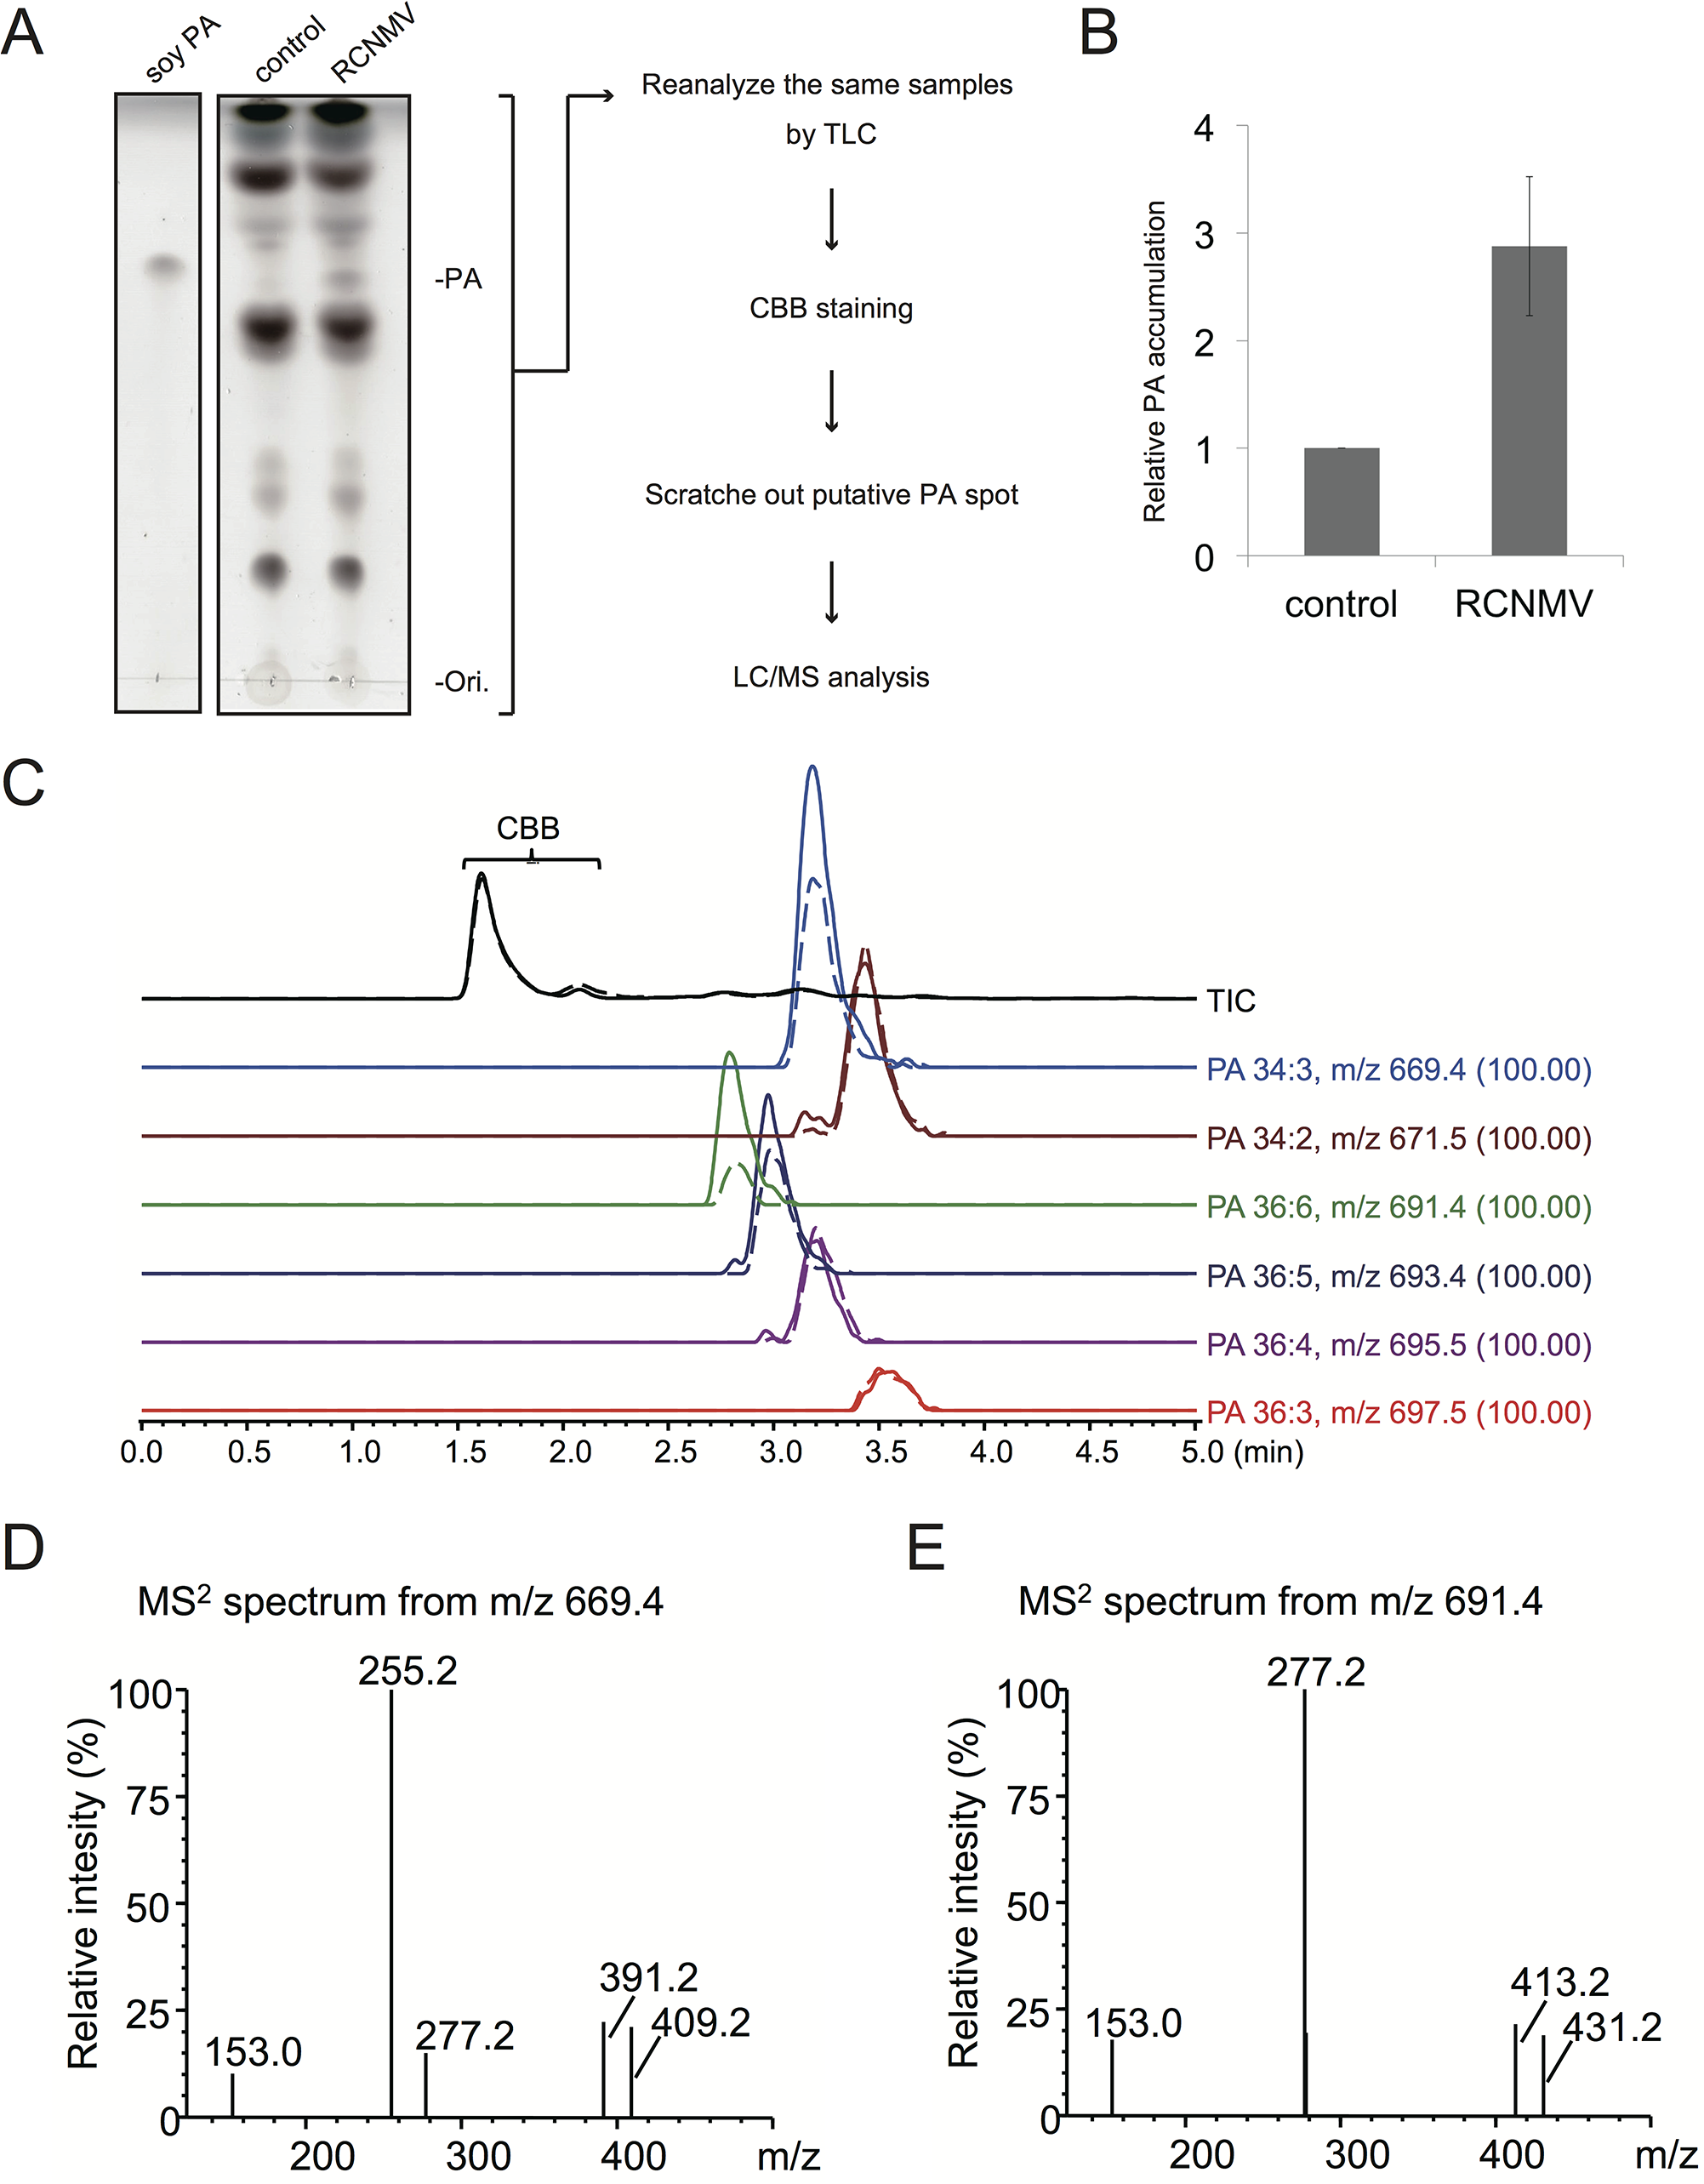 RCNMV stimulates the accumulation of PA in a plant tissue.